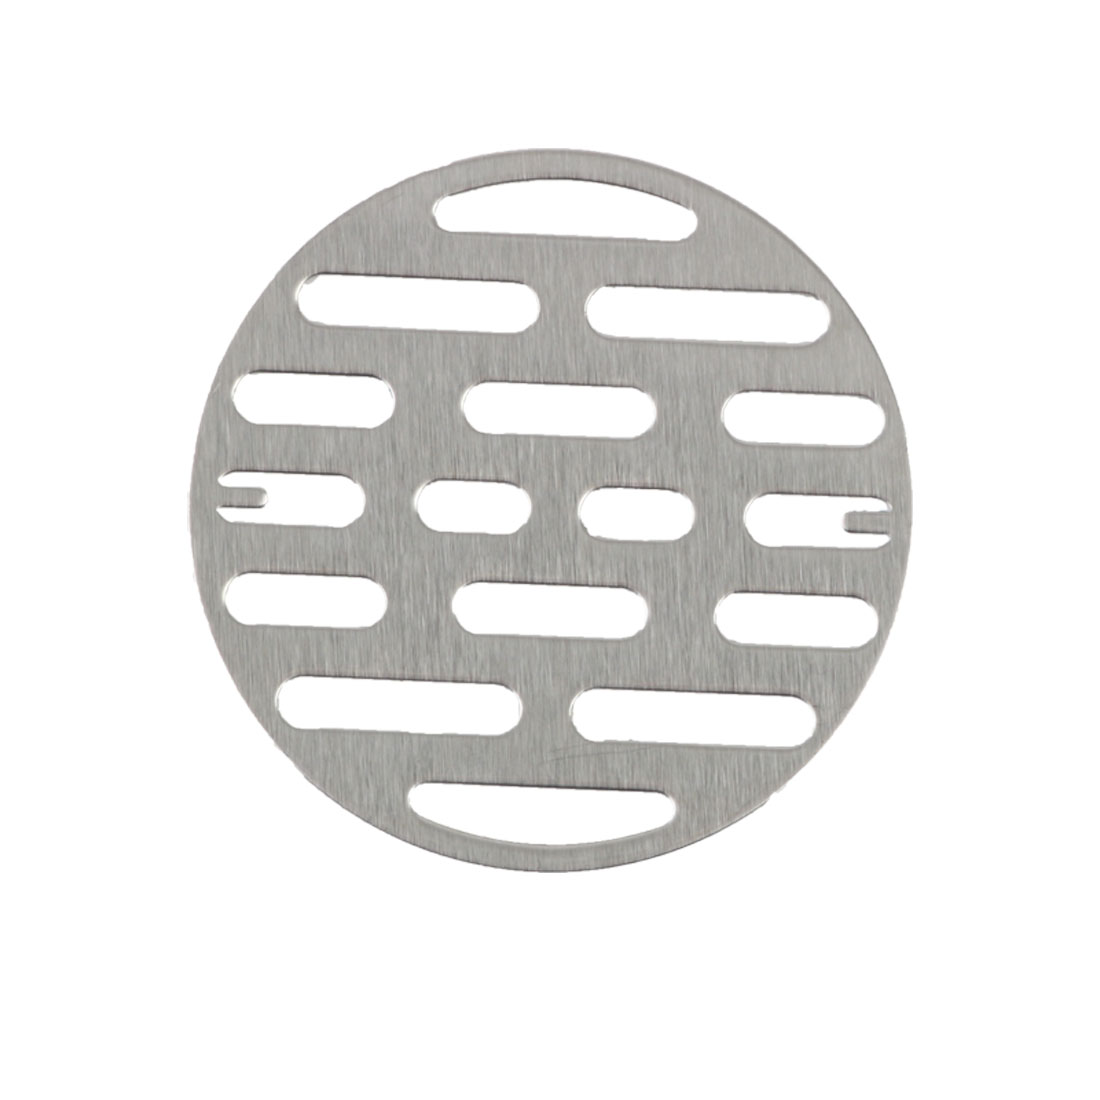 """2.87"""" Snap-in Floor Drain Cover Hair Catcher Sink Filters Stopper Kitchen"""